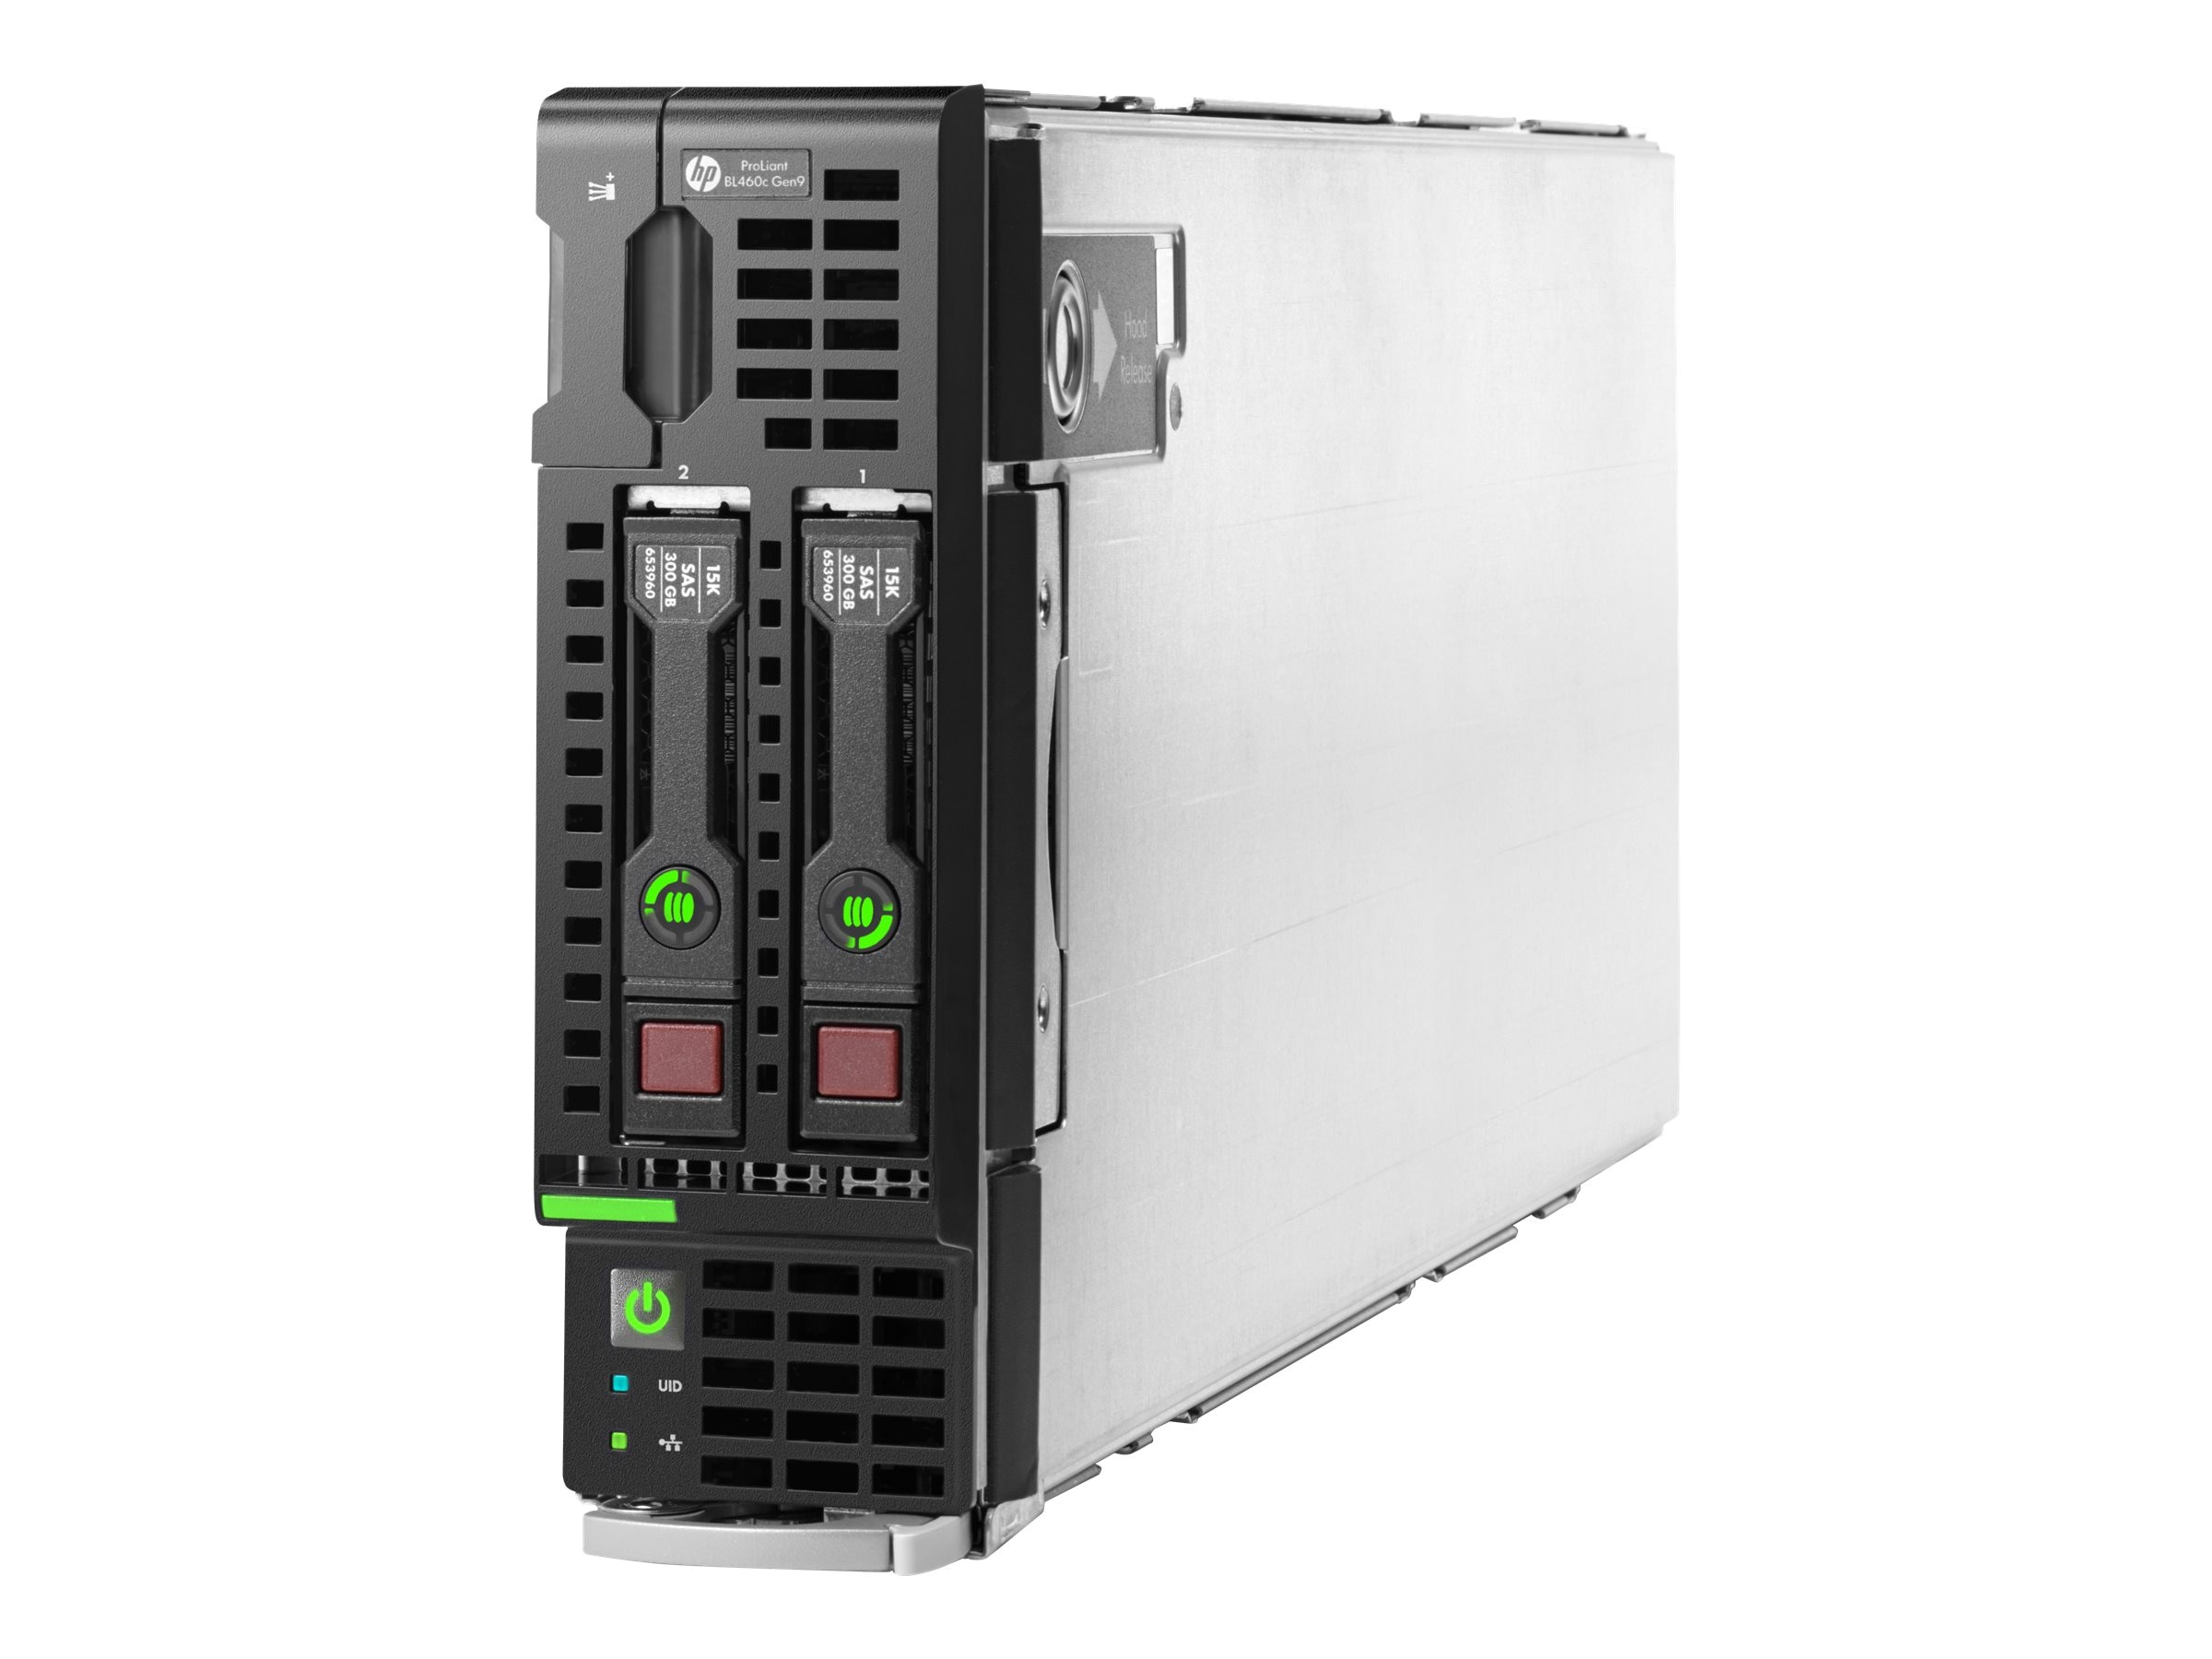 HP ProLiant BL460c Gen9 Intel 2.6GHz Xeon Xeon, 779803-S01, 17784032, Servers - Blade